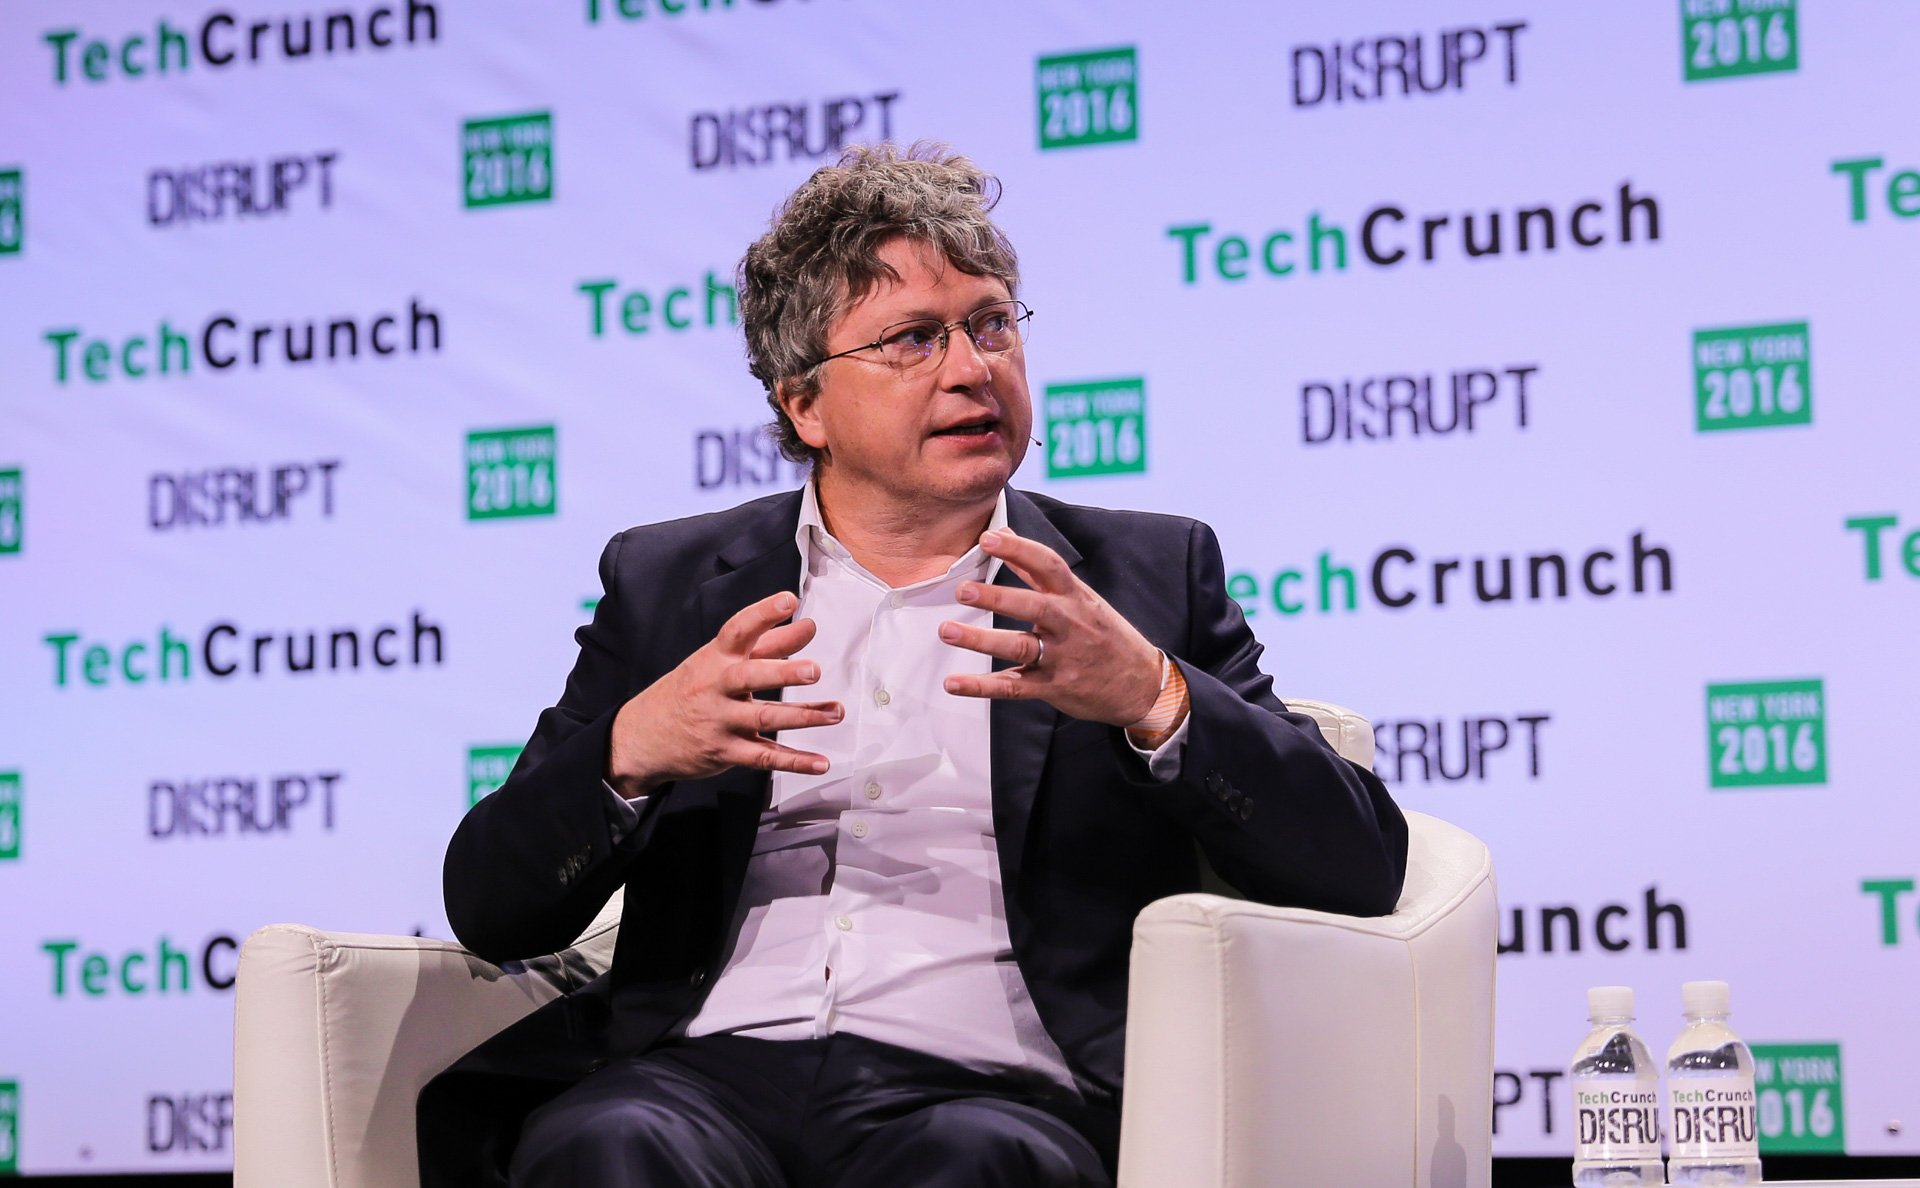 Parrot's Henri Seydoux comes to Disrupt to talk about commercial drones https://t.co/CaHRB4HW7B by @romaindillet https://t.co/inFsIb4L3a